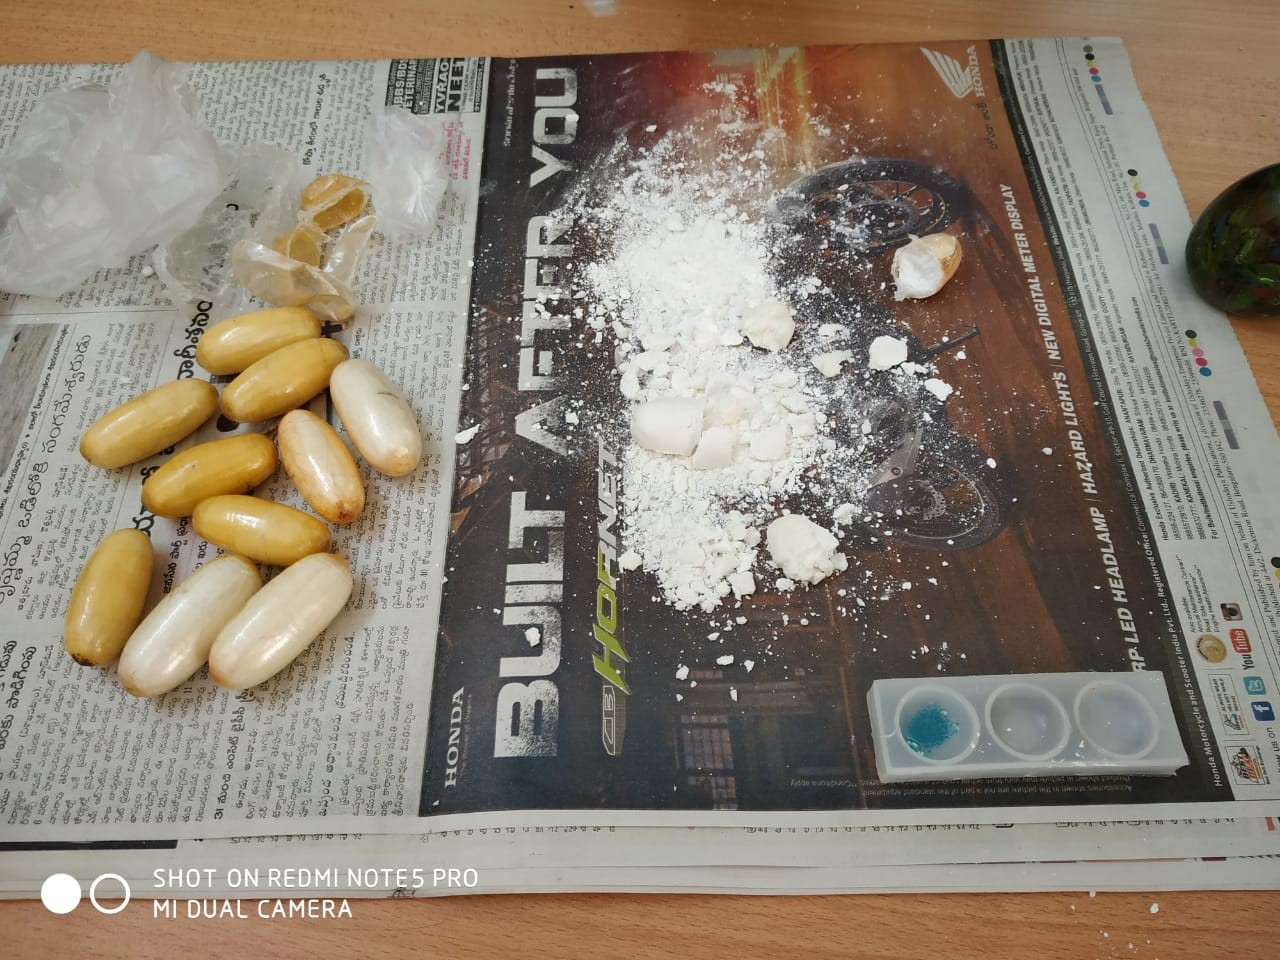 Nigerian man arrested in India with 155.5 grams of cocaine